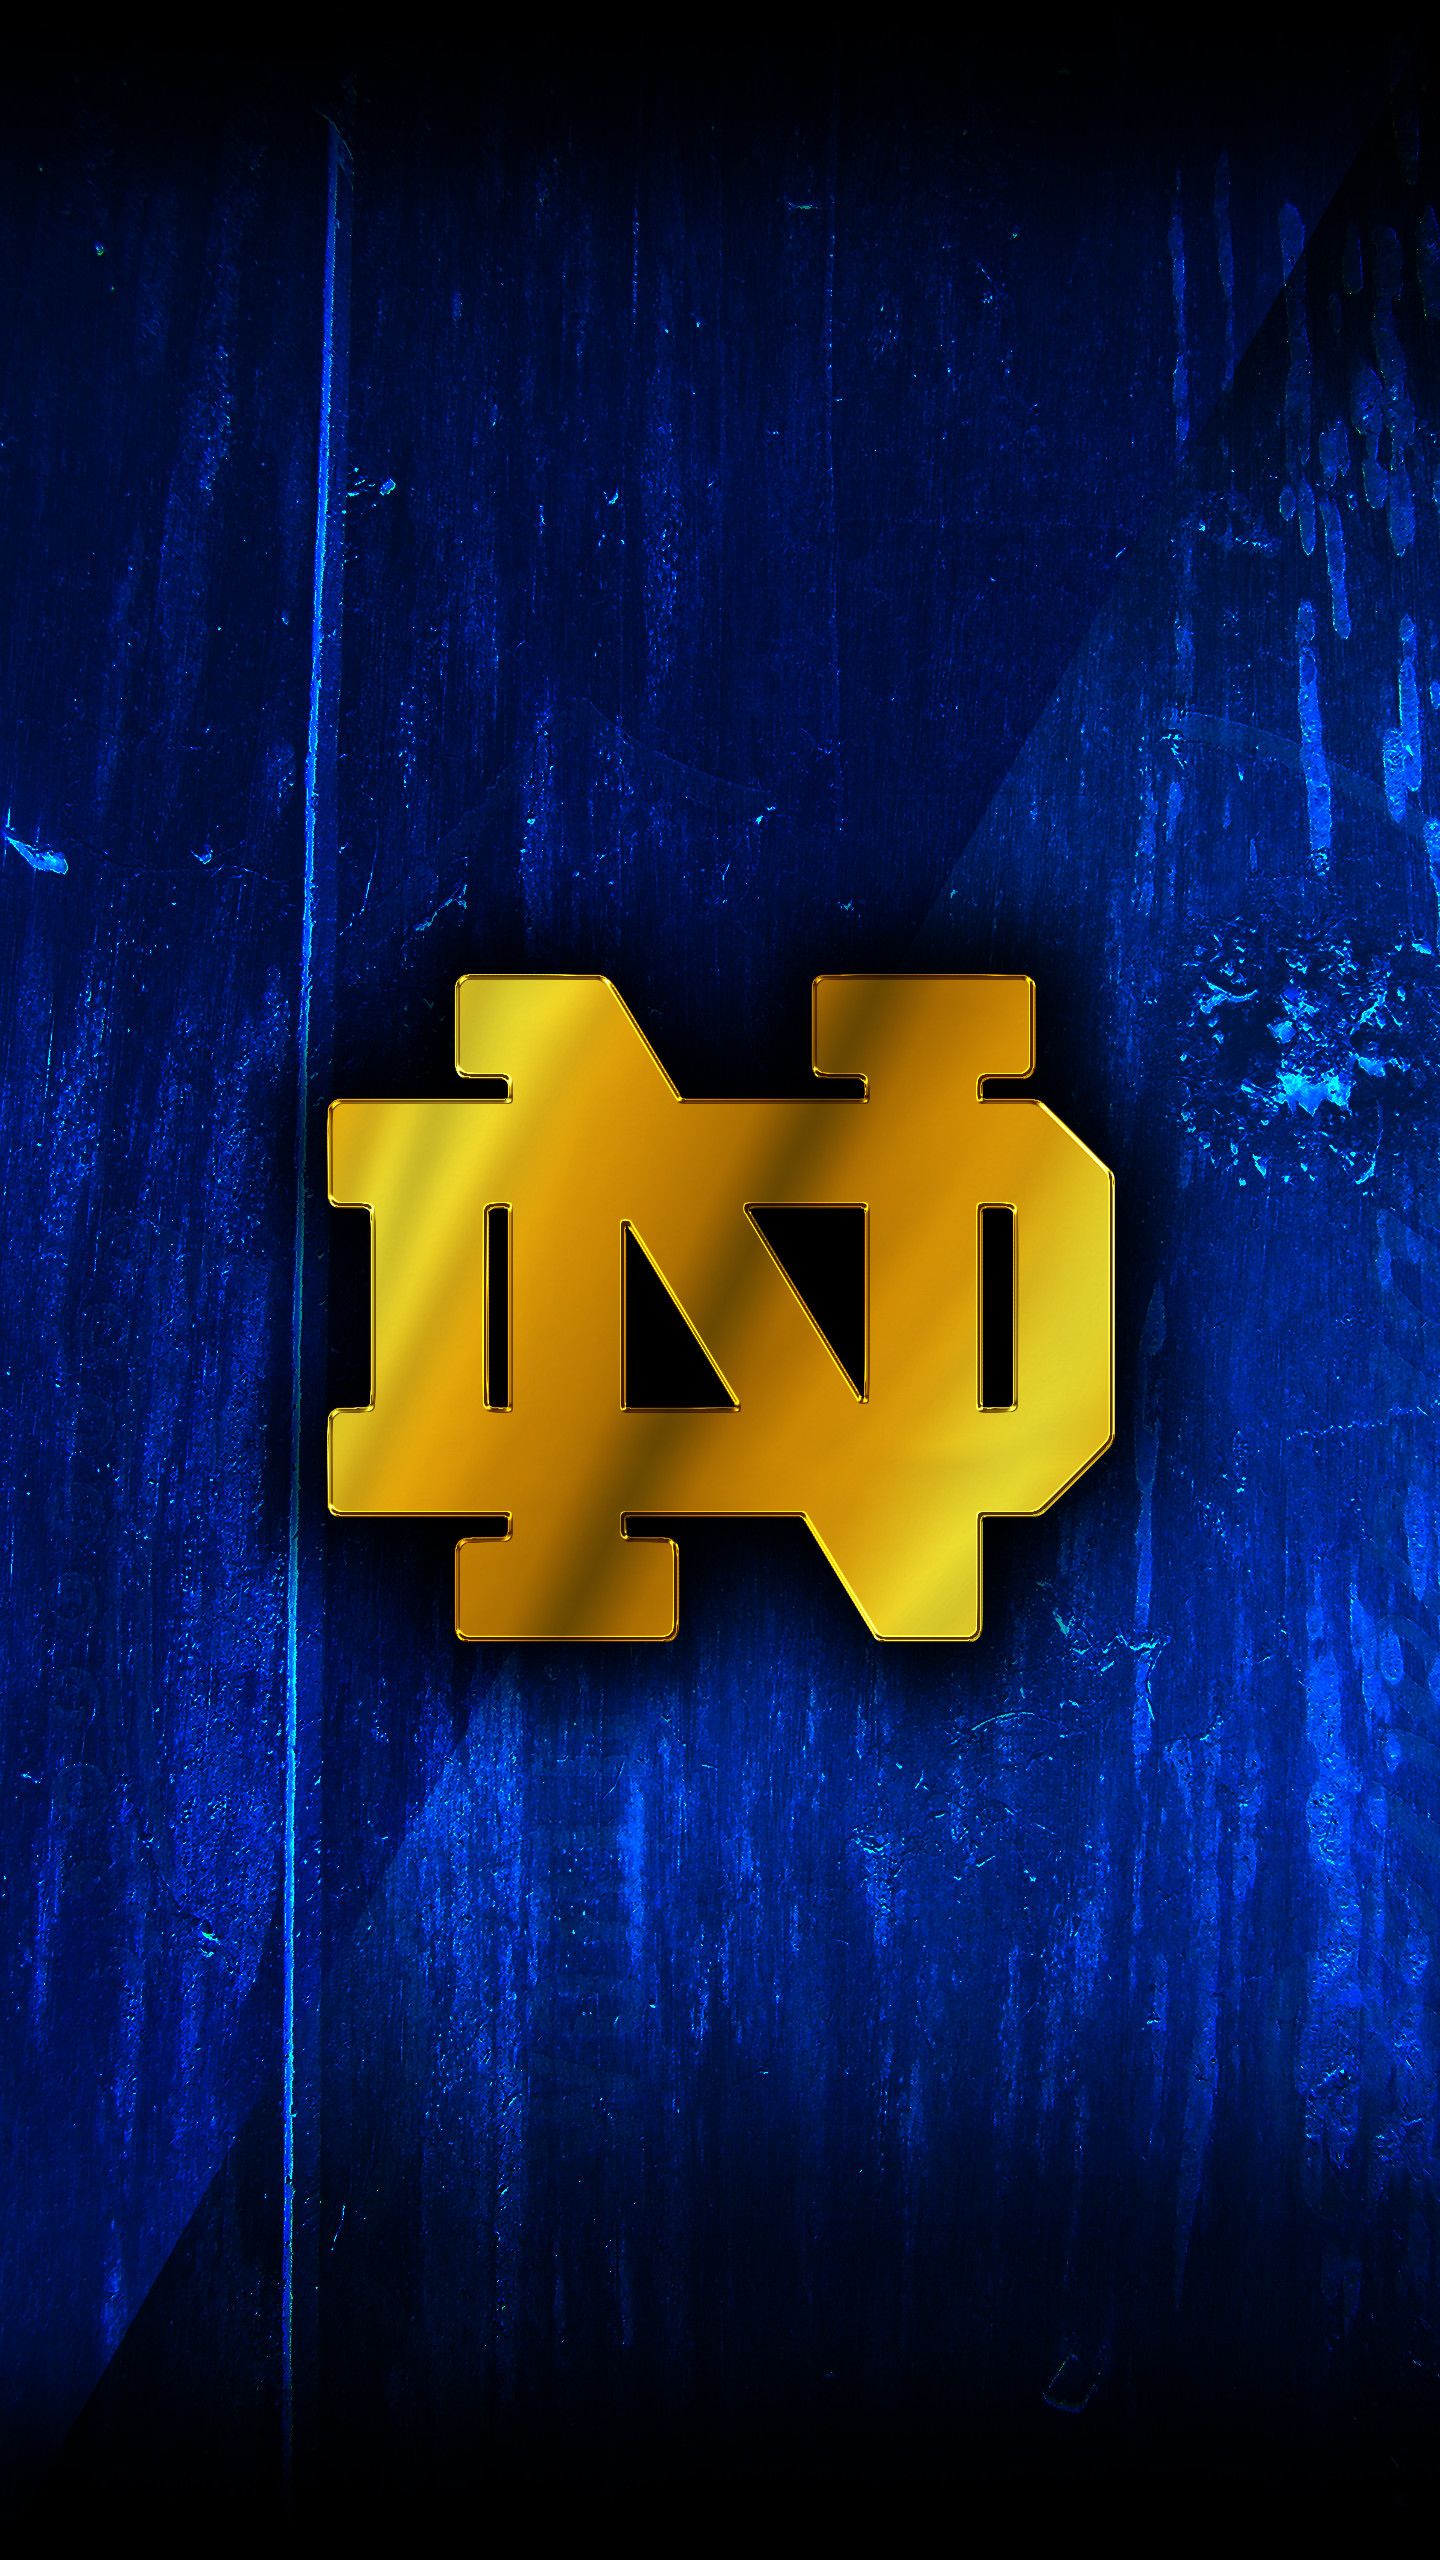 1440x2560 Notre Dame iPhone/Android Wallpaper for your Smart Phone. Save and Download  Image from Pinterest. Screen Resolution (1440 x 2560)